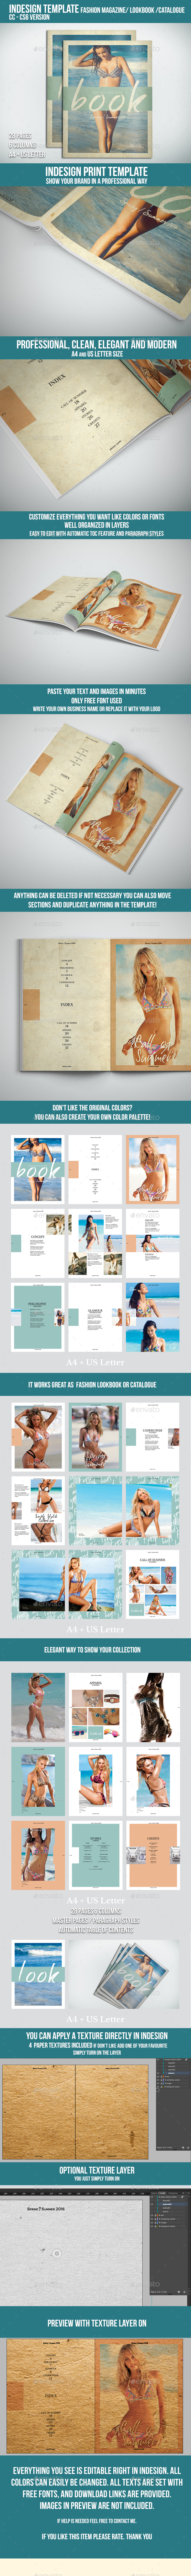 Lookbook / Fashion Magazine / Catalogue / Brochure Indesign Template - Print Templates